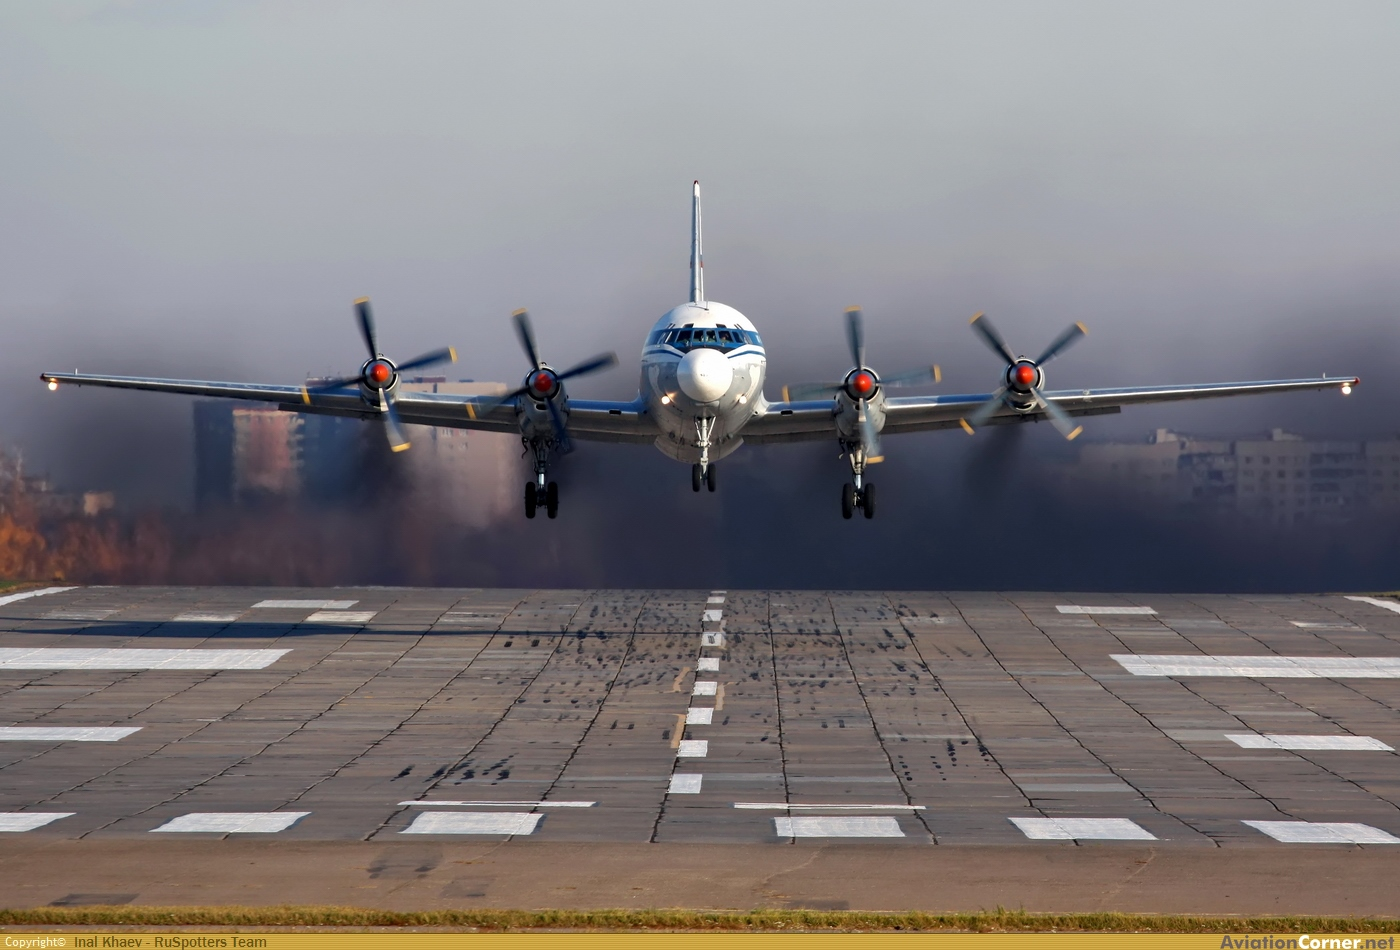 ©Inal Khaev - RuSpotters Team. Click to see full-size photo